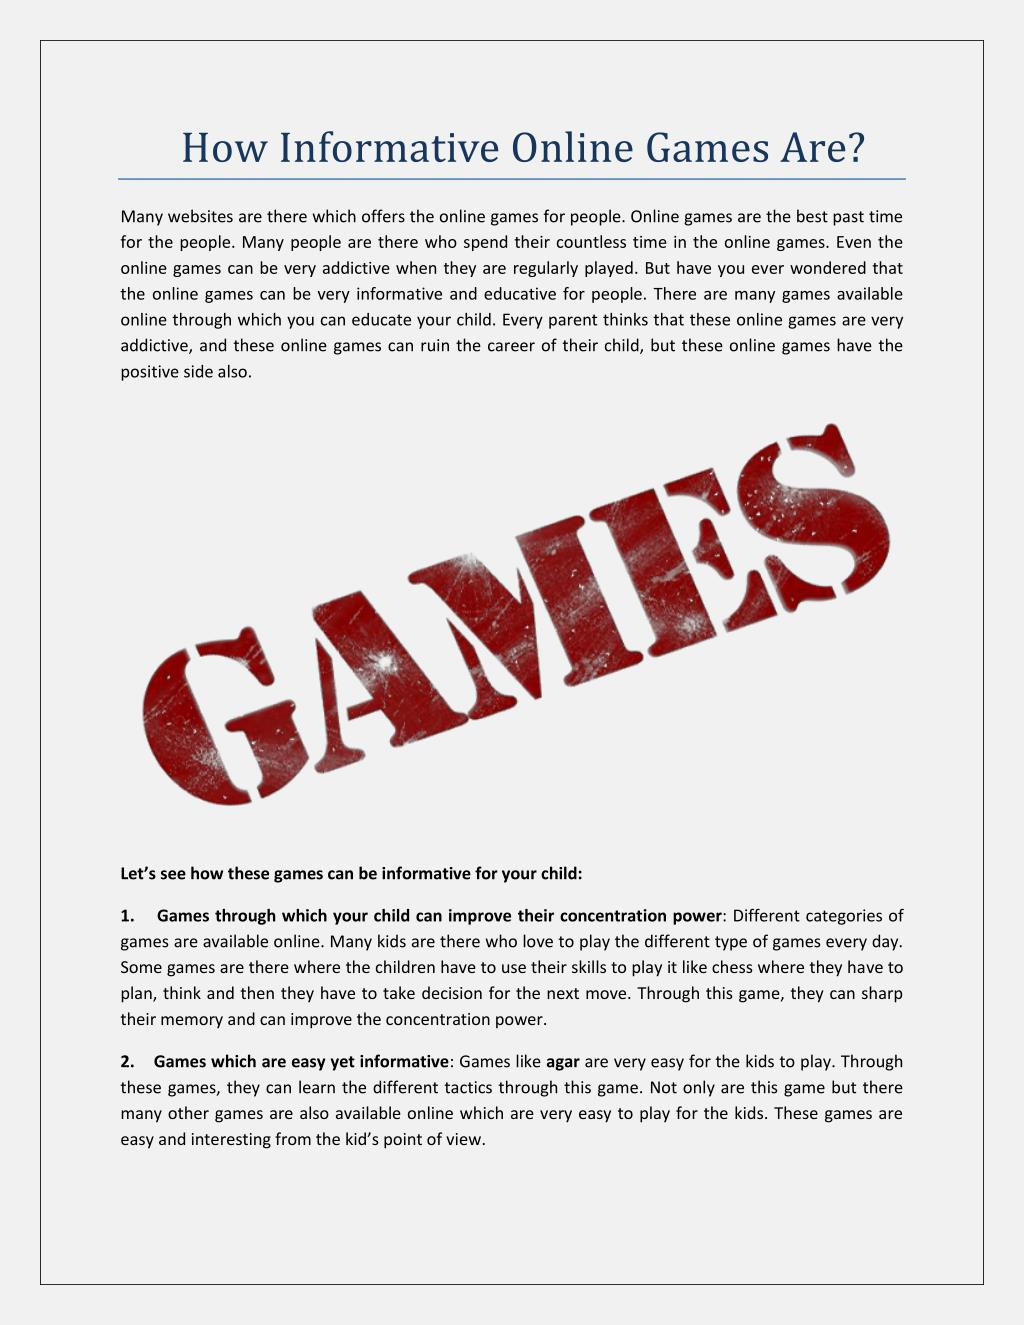 Ppt How Informative Online Games Are Powerpoint Presentation Free Download Id 7300177